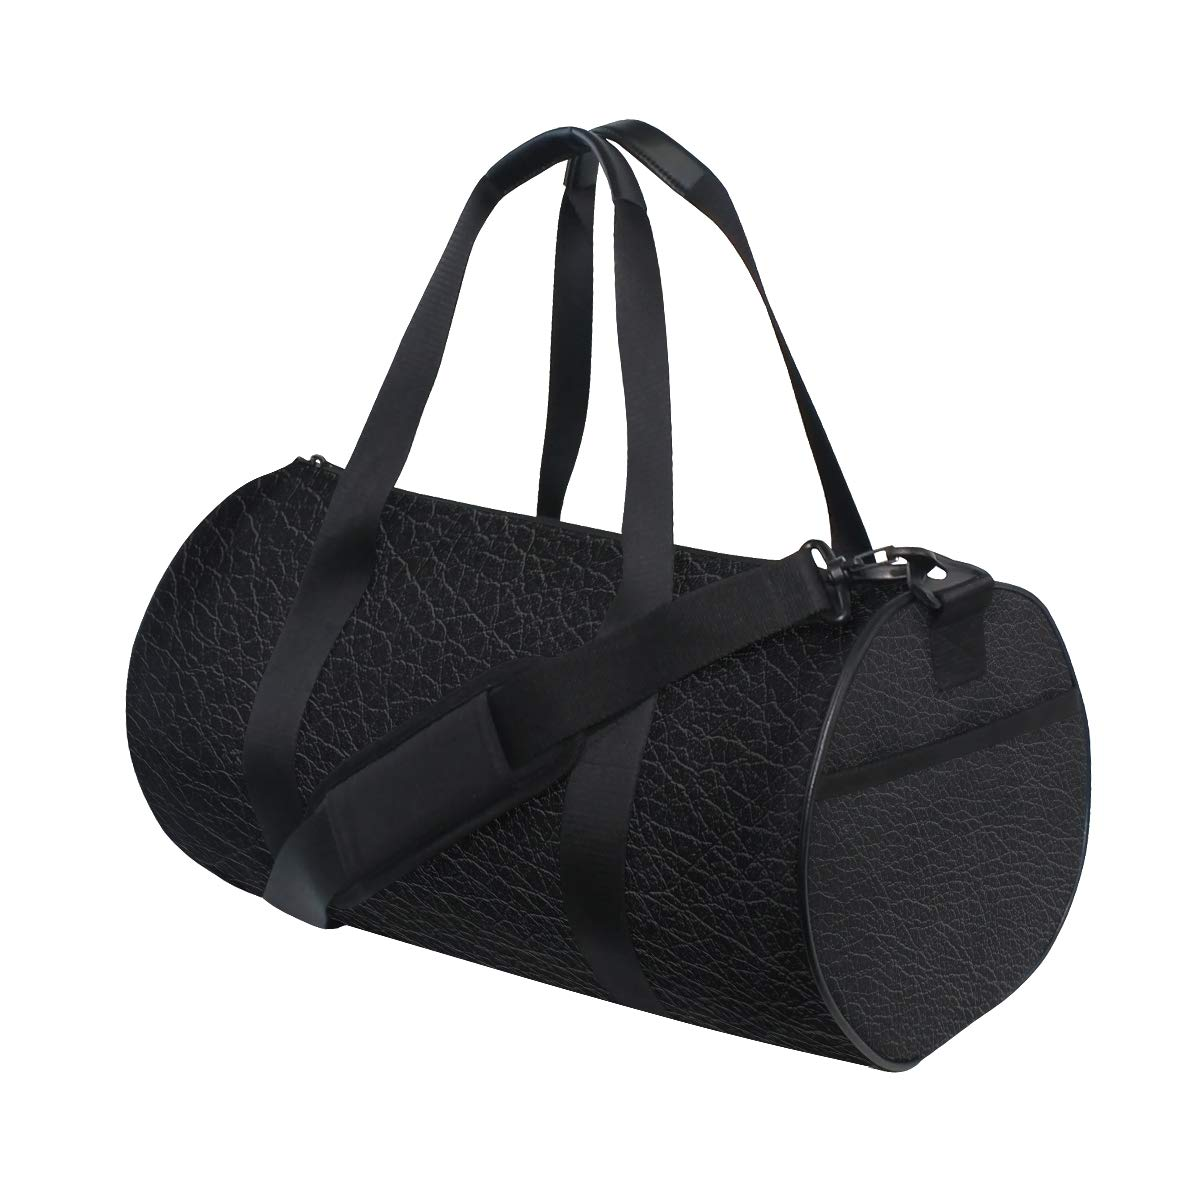 Black Yoga Sports Gym Duffle Bags Tote Sling Travel Bag Patterned Canvas with Pocket and Zipper For Men Women Bag